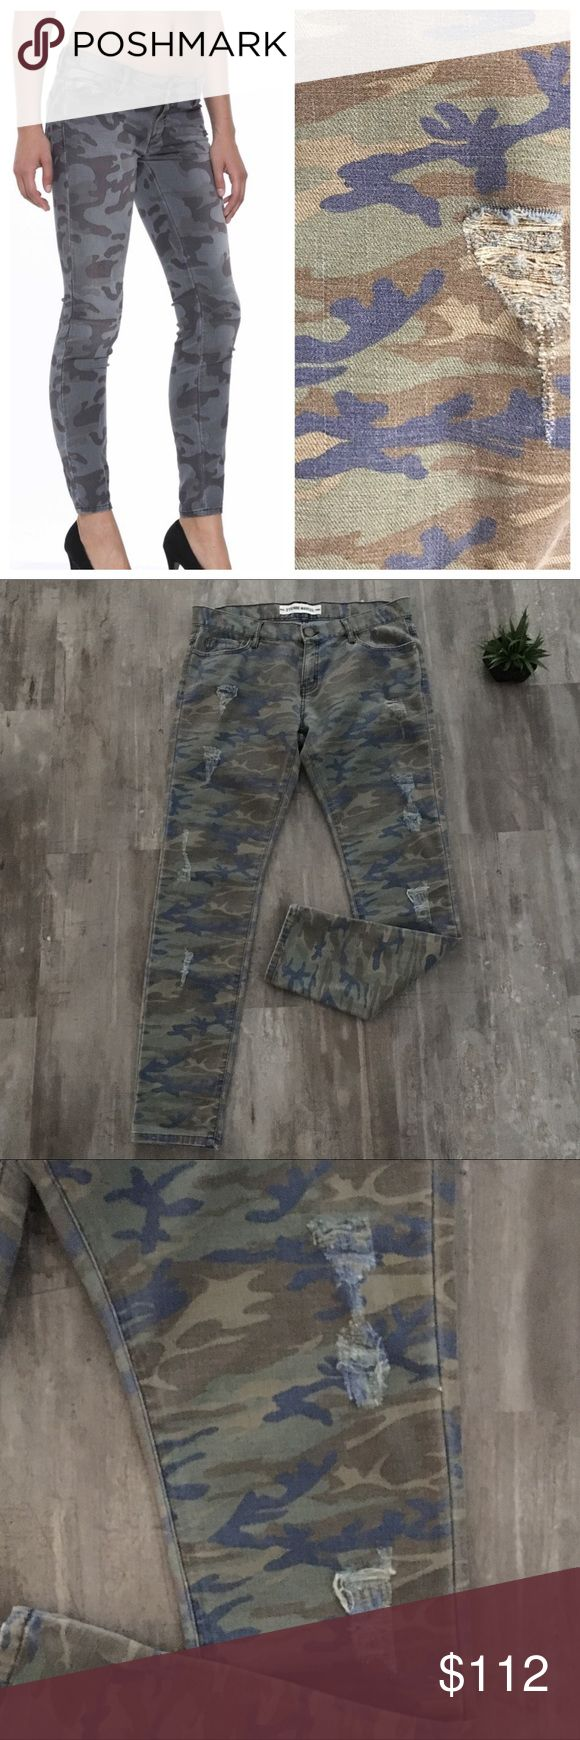 "Etienne Marcel👖Camo Skinny in Green, Blue, Brown Beautiful preloved condition, no stains or marks. Exact same skinny style as shown, just in different color camo. Beloved by celebs, Etienne Marcel's camp skinny jeans are lightweight, distressed, have some stretch and can be dressed up or down. Shell: 97% cotton, 3% elastane, Pocket Lining: 65% polyester, 35% Cotton, waist measures 17.5"", 9.5"" rise, Front and back pockets, button closure and zip fly, five pocket style, knee appx 14"" and…"